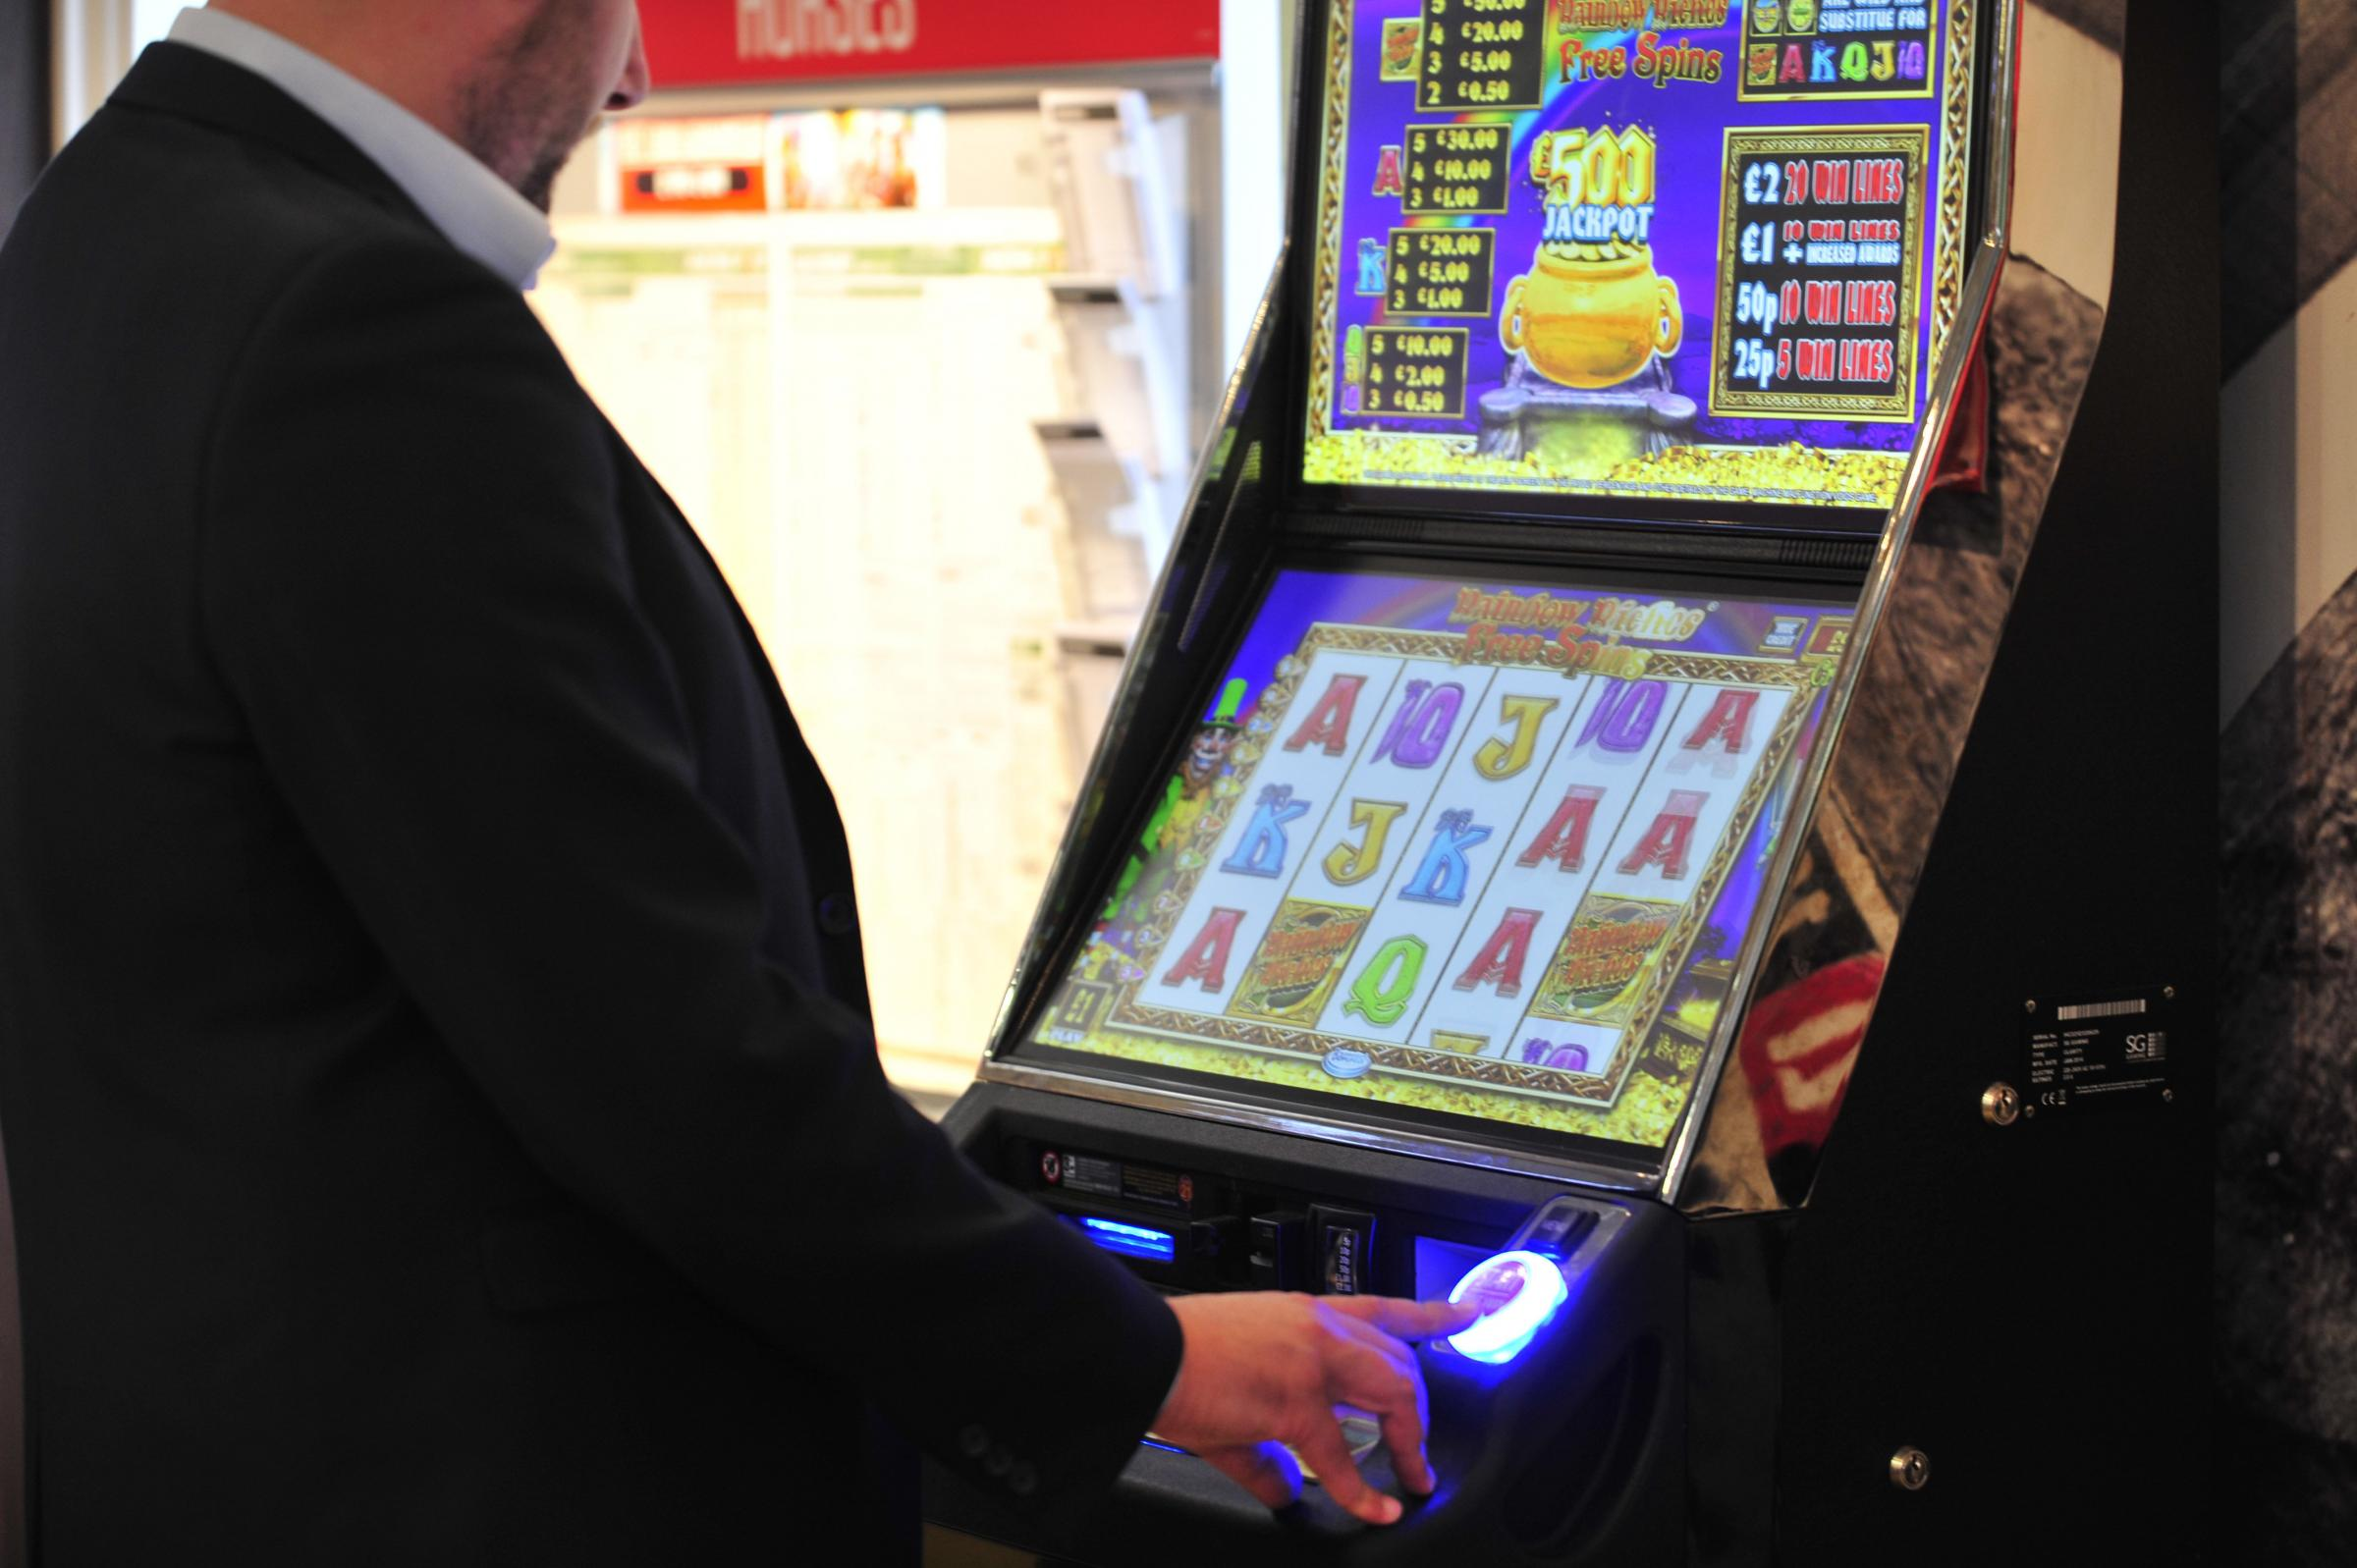 About 58% of adults gambled in some form last year